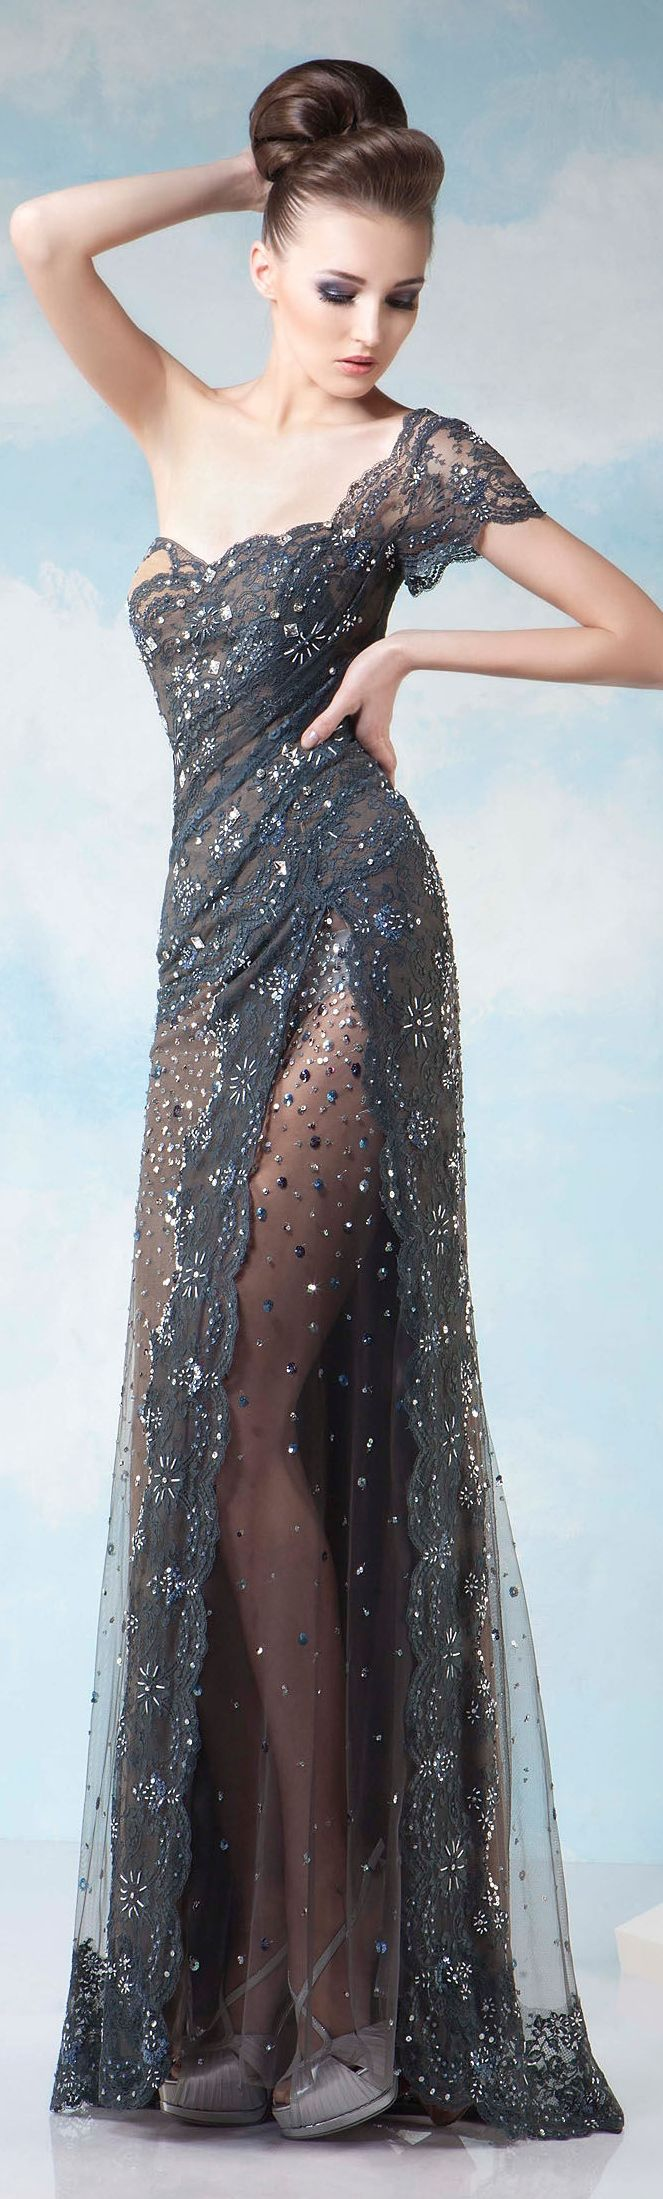 Lace dress gray  Gorgeous dress  Love for Fashion  Pinterest  Couture Gowns and Prom